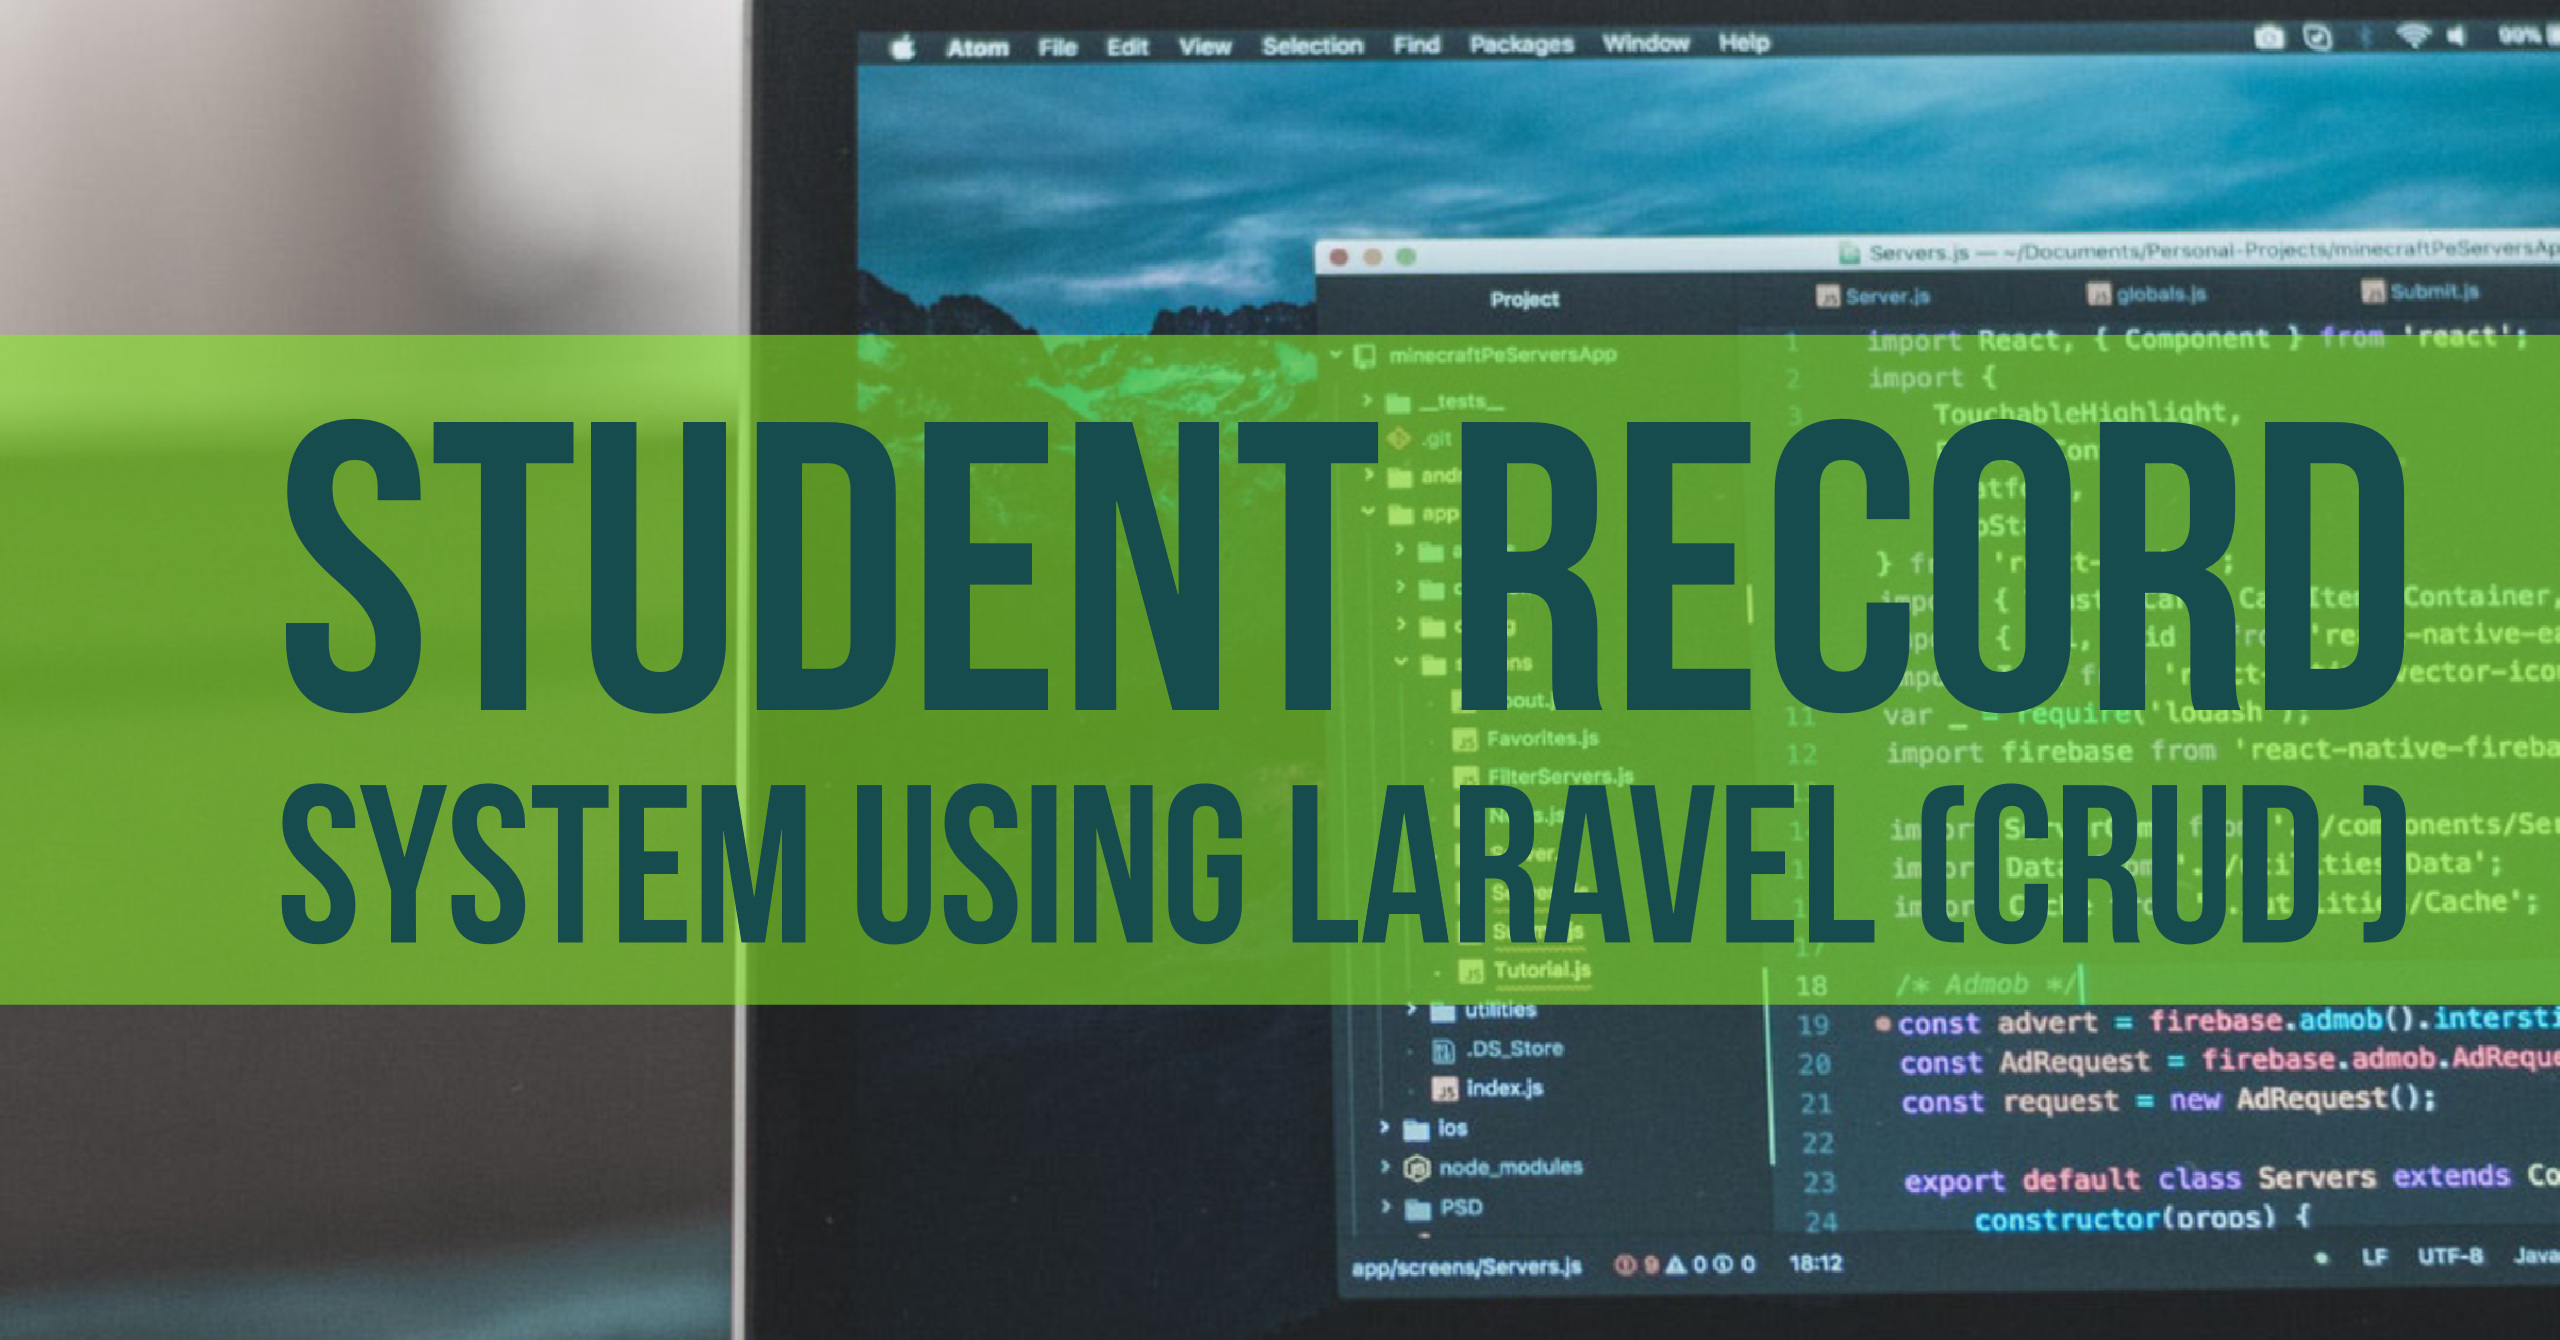 Design and Implementation of Student Record System